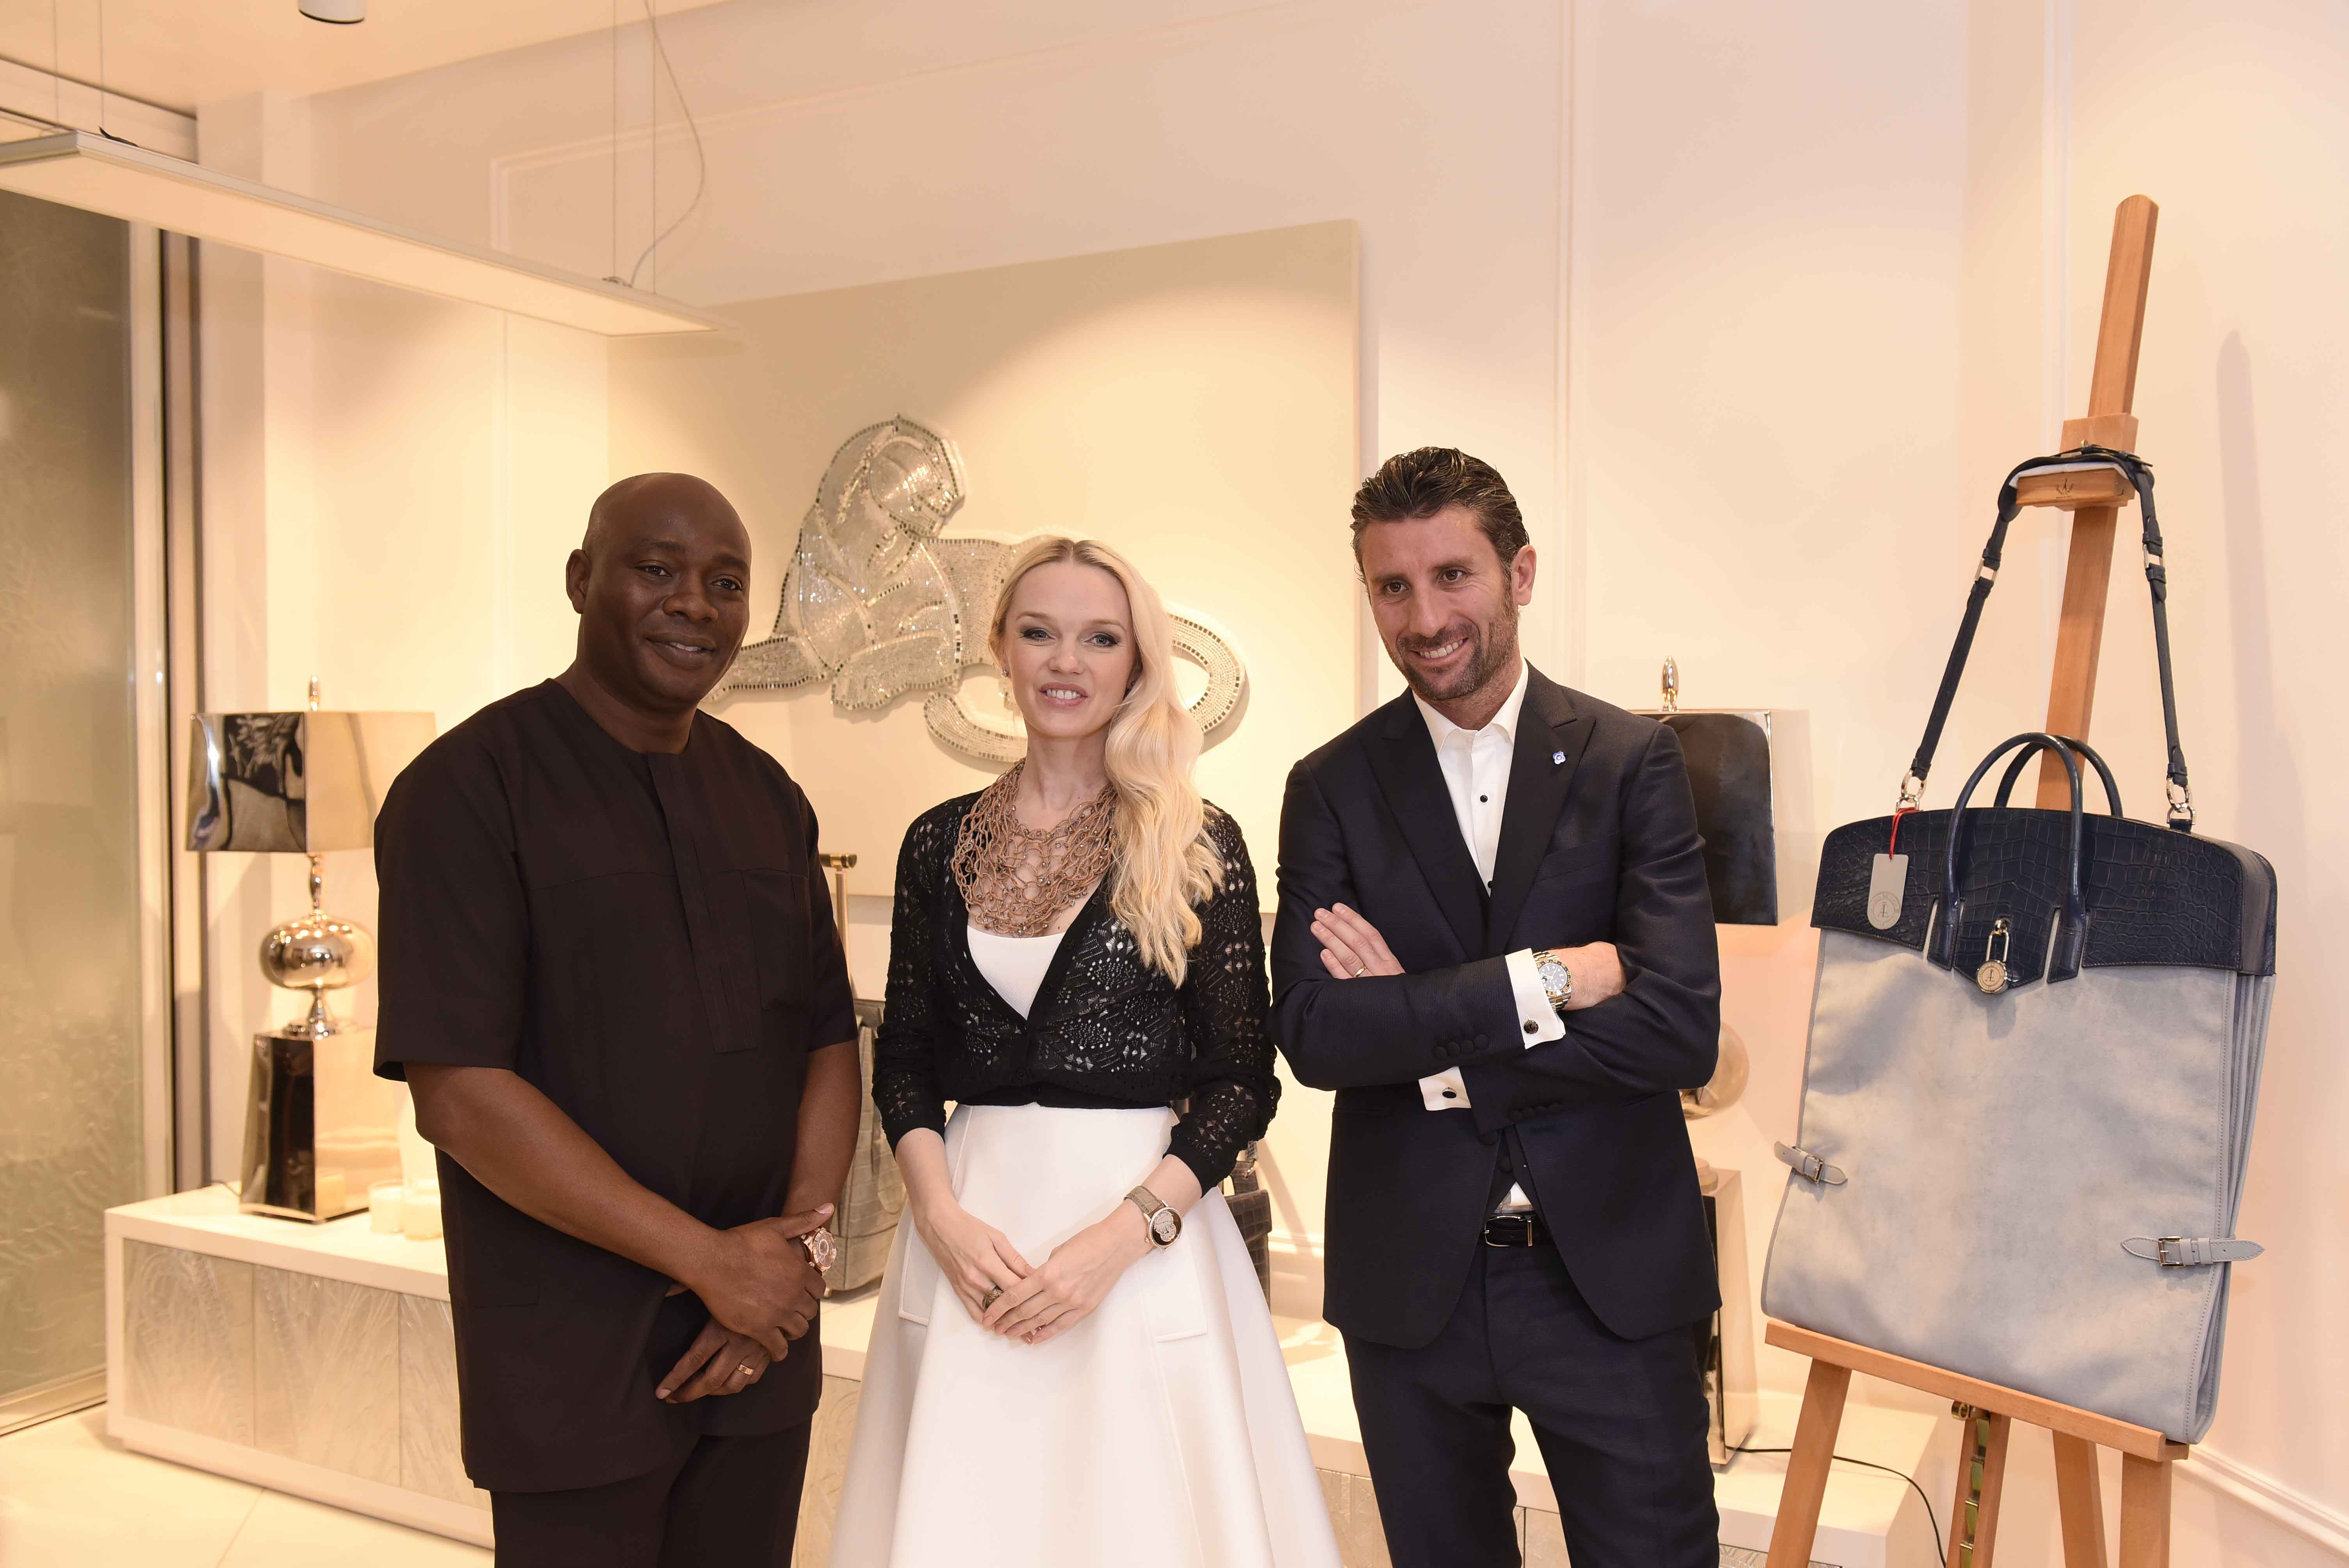 L-R Michael Owolabi, CEO, IL Bagno, Julia D. Lantieri, CEO, Alter Ego Project Group at the launch of Alter Ego and Davide Doro, CEO, Alchymia at the launch of Alter Ego Private Atelier in Abuja